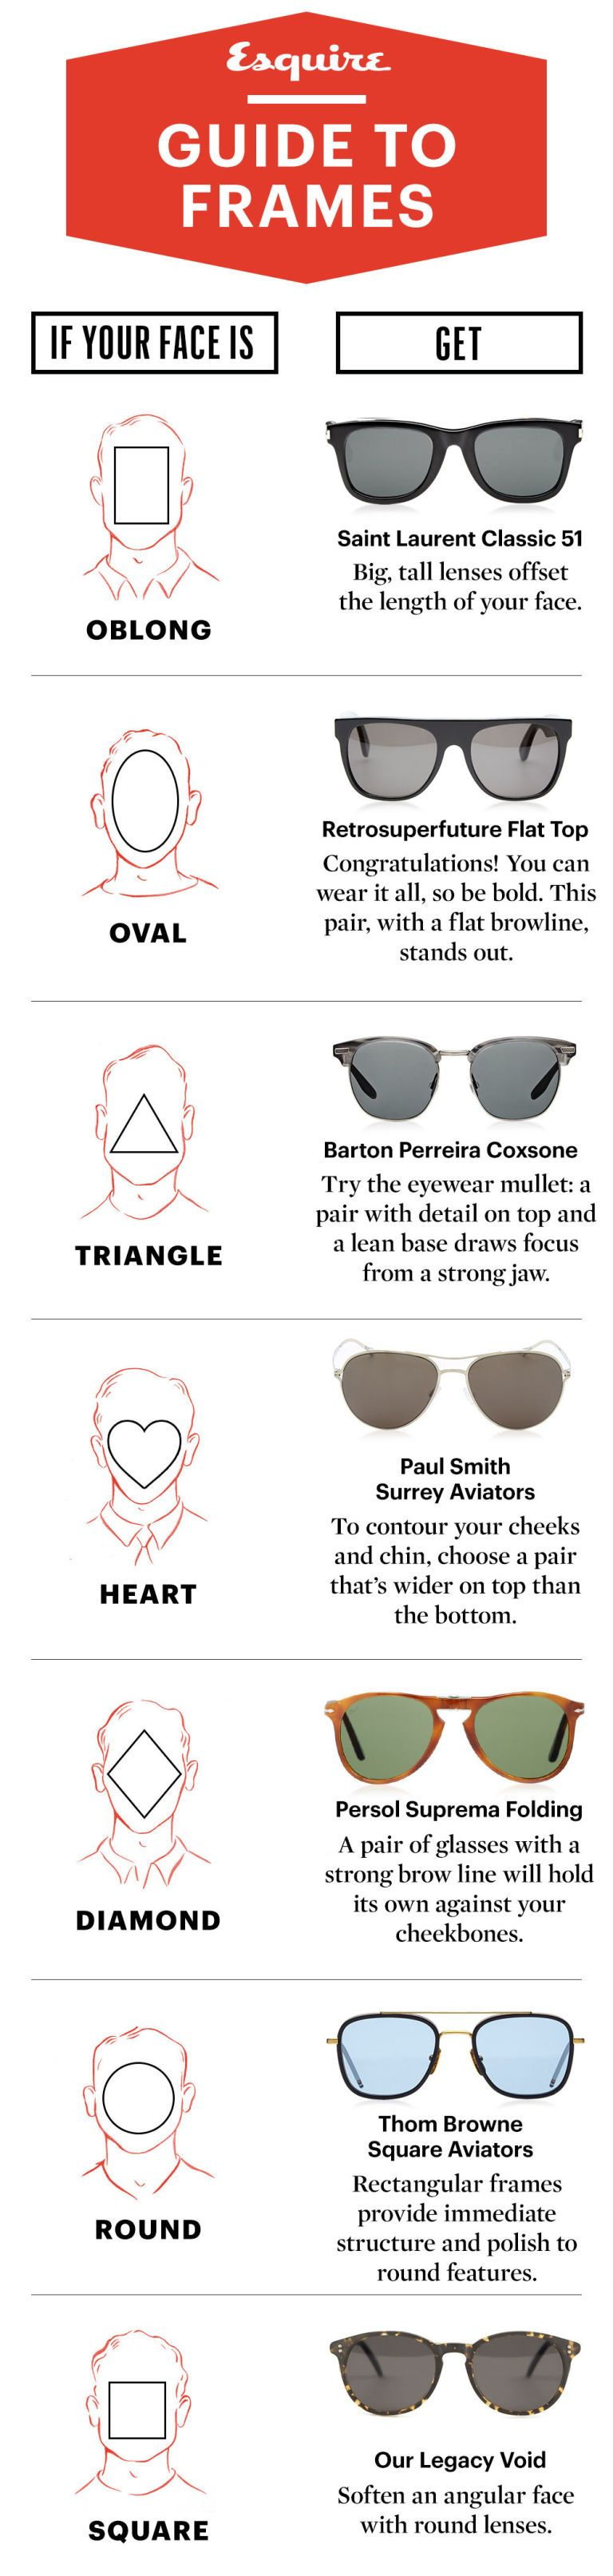 09ef0b77600 mywebroom blog esquire male fashion sunglass frame guide style infographic